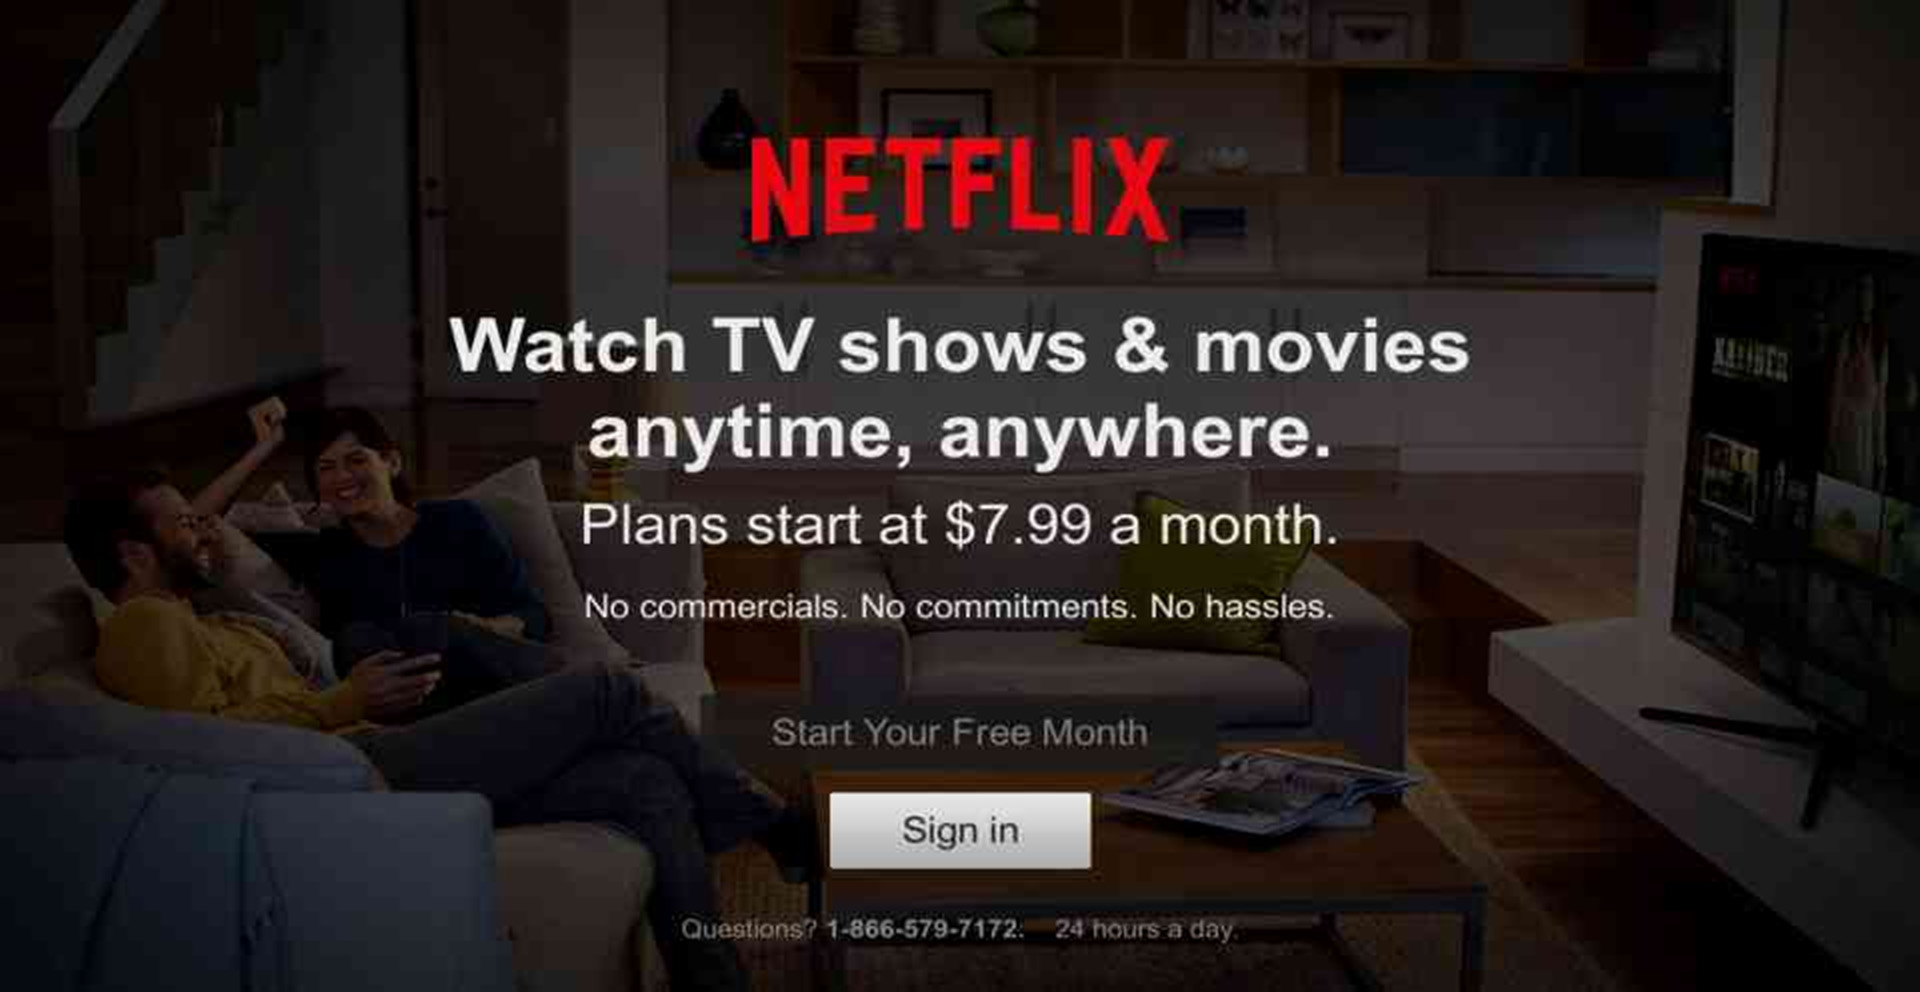 Troubleshooting the Netflix App - TV | LG USA Support